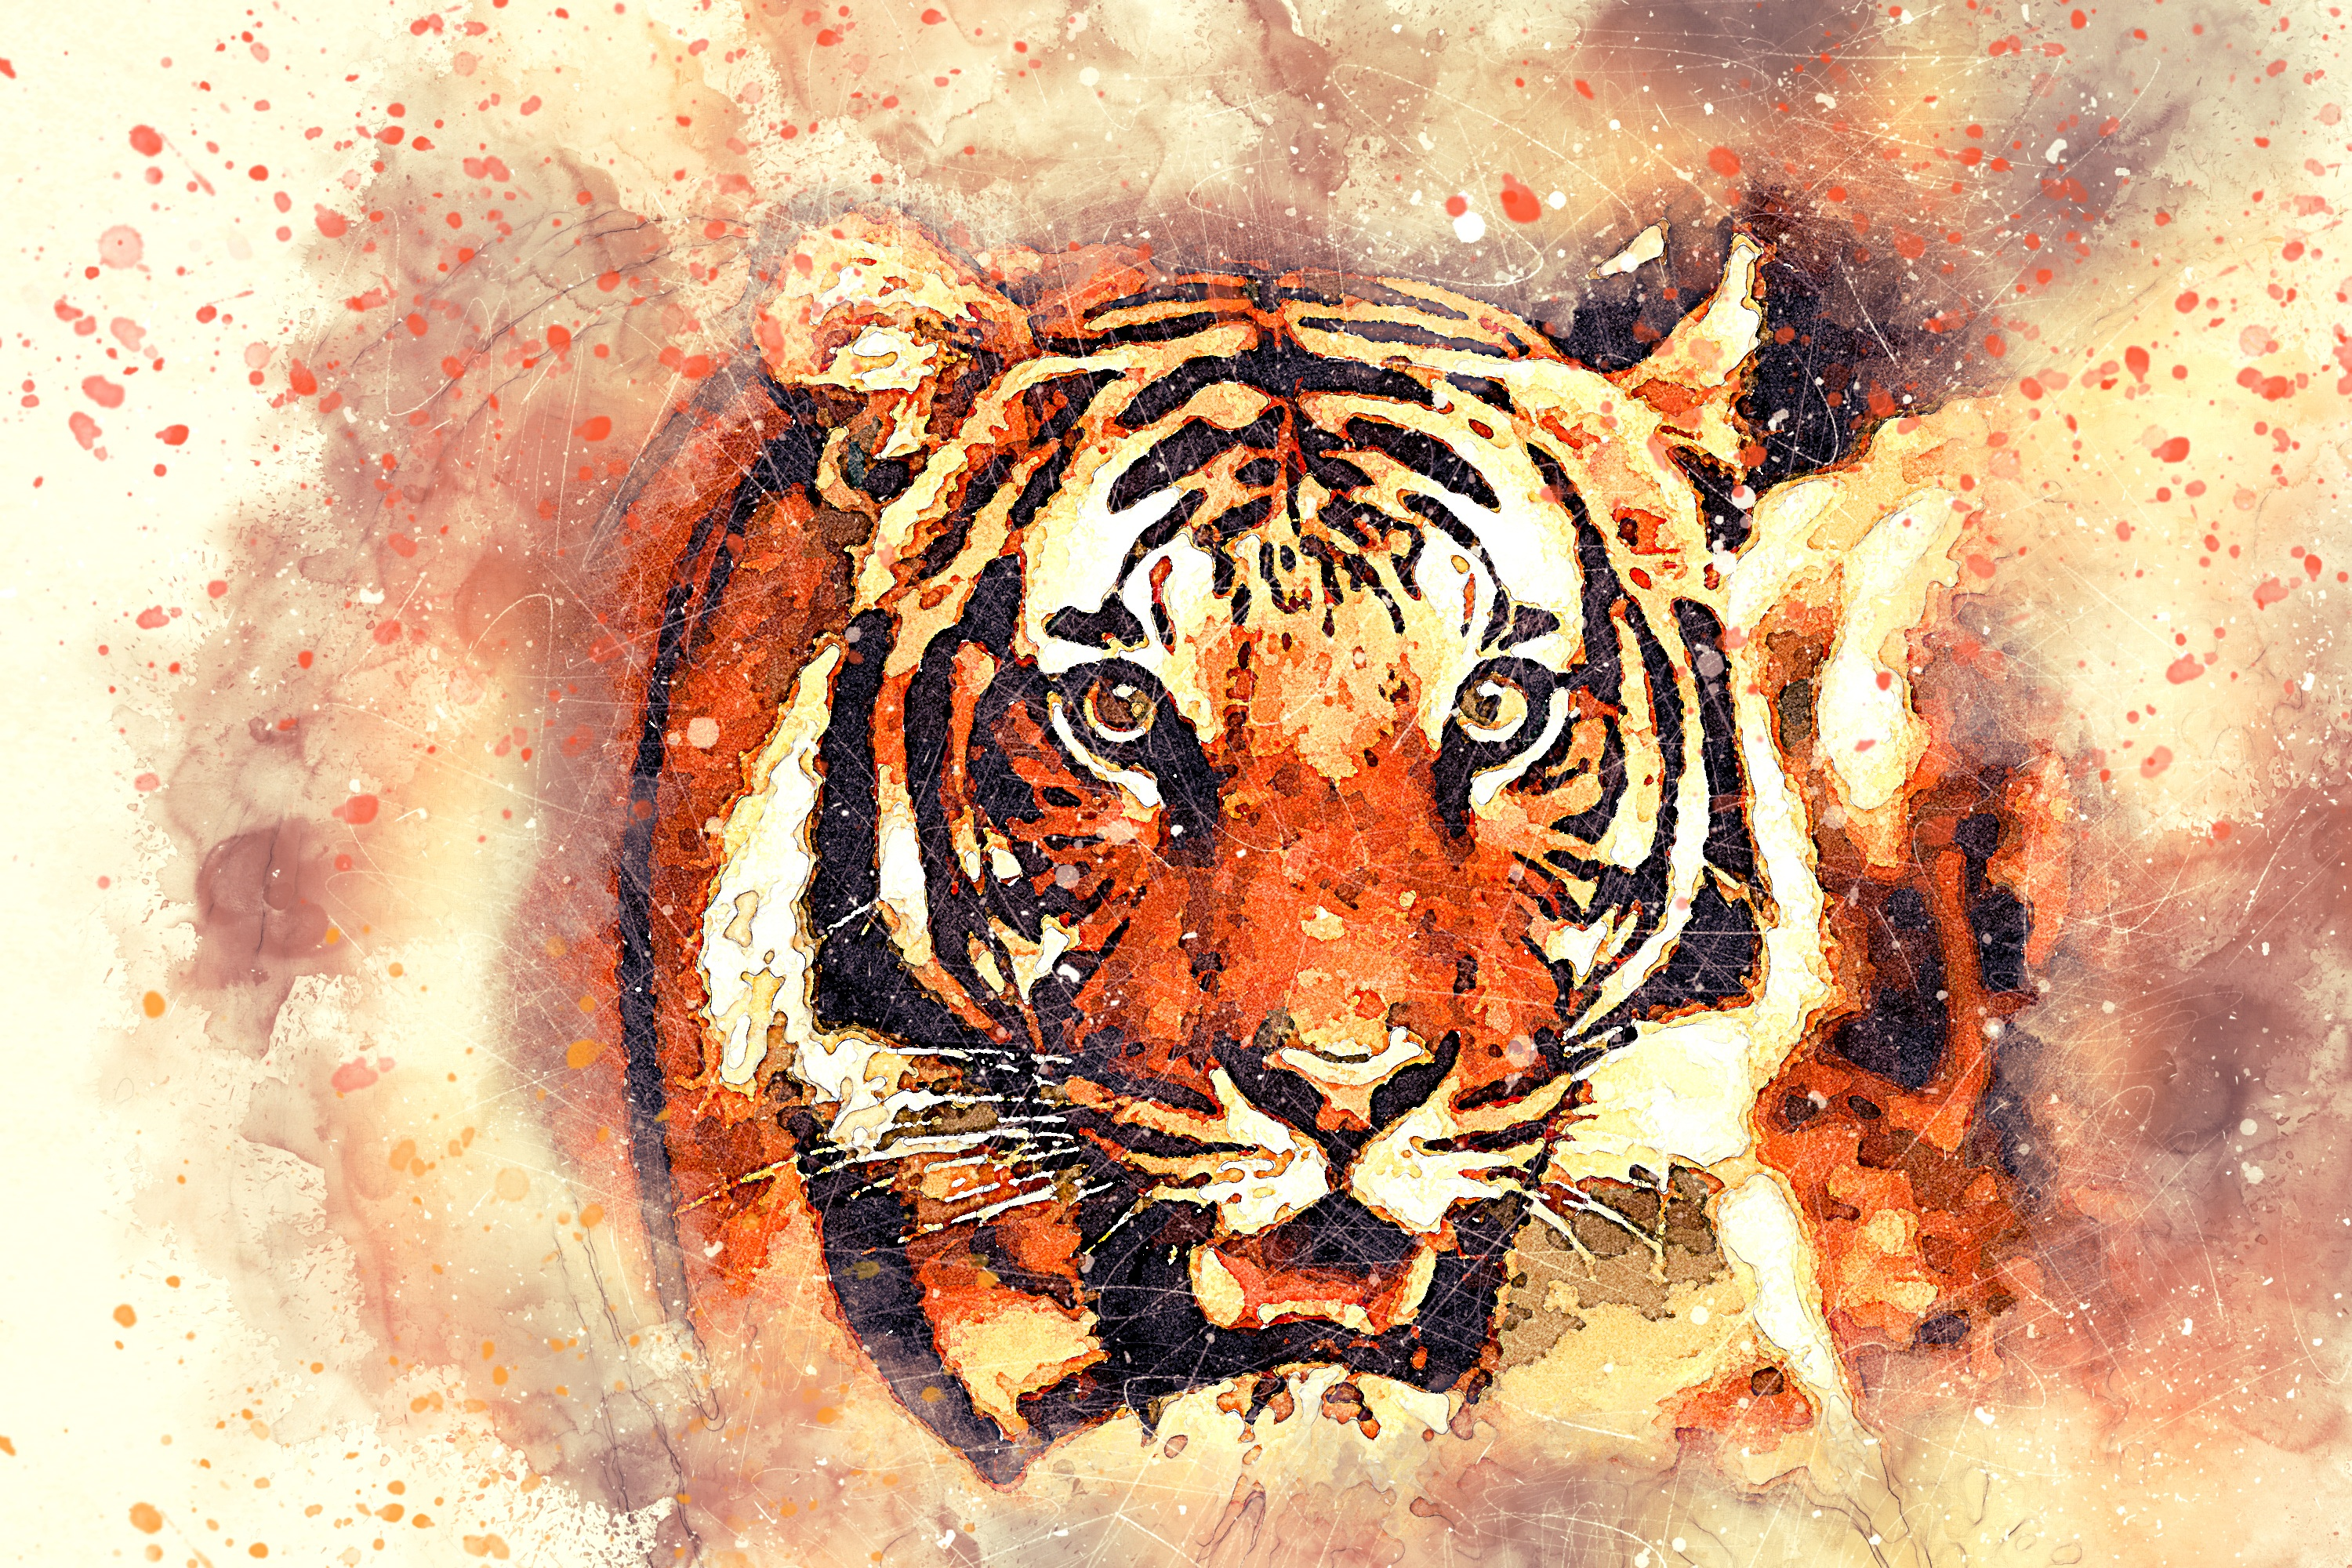 104163 download wallpaper Animals, Tiger, Art, Grin, Muzzle screensavers and pictures for free